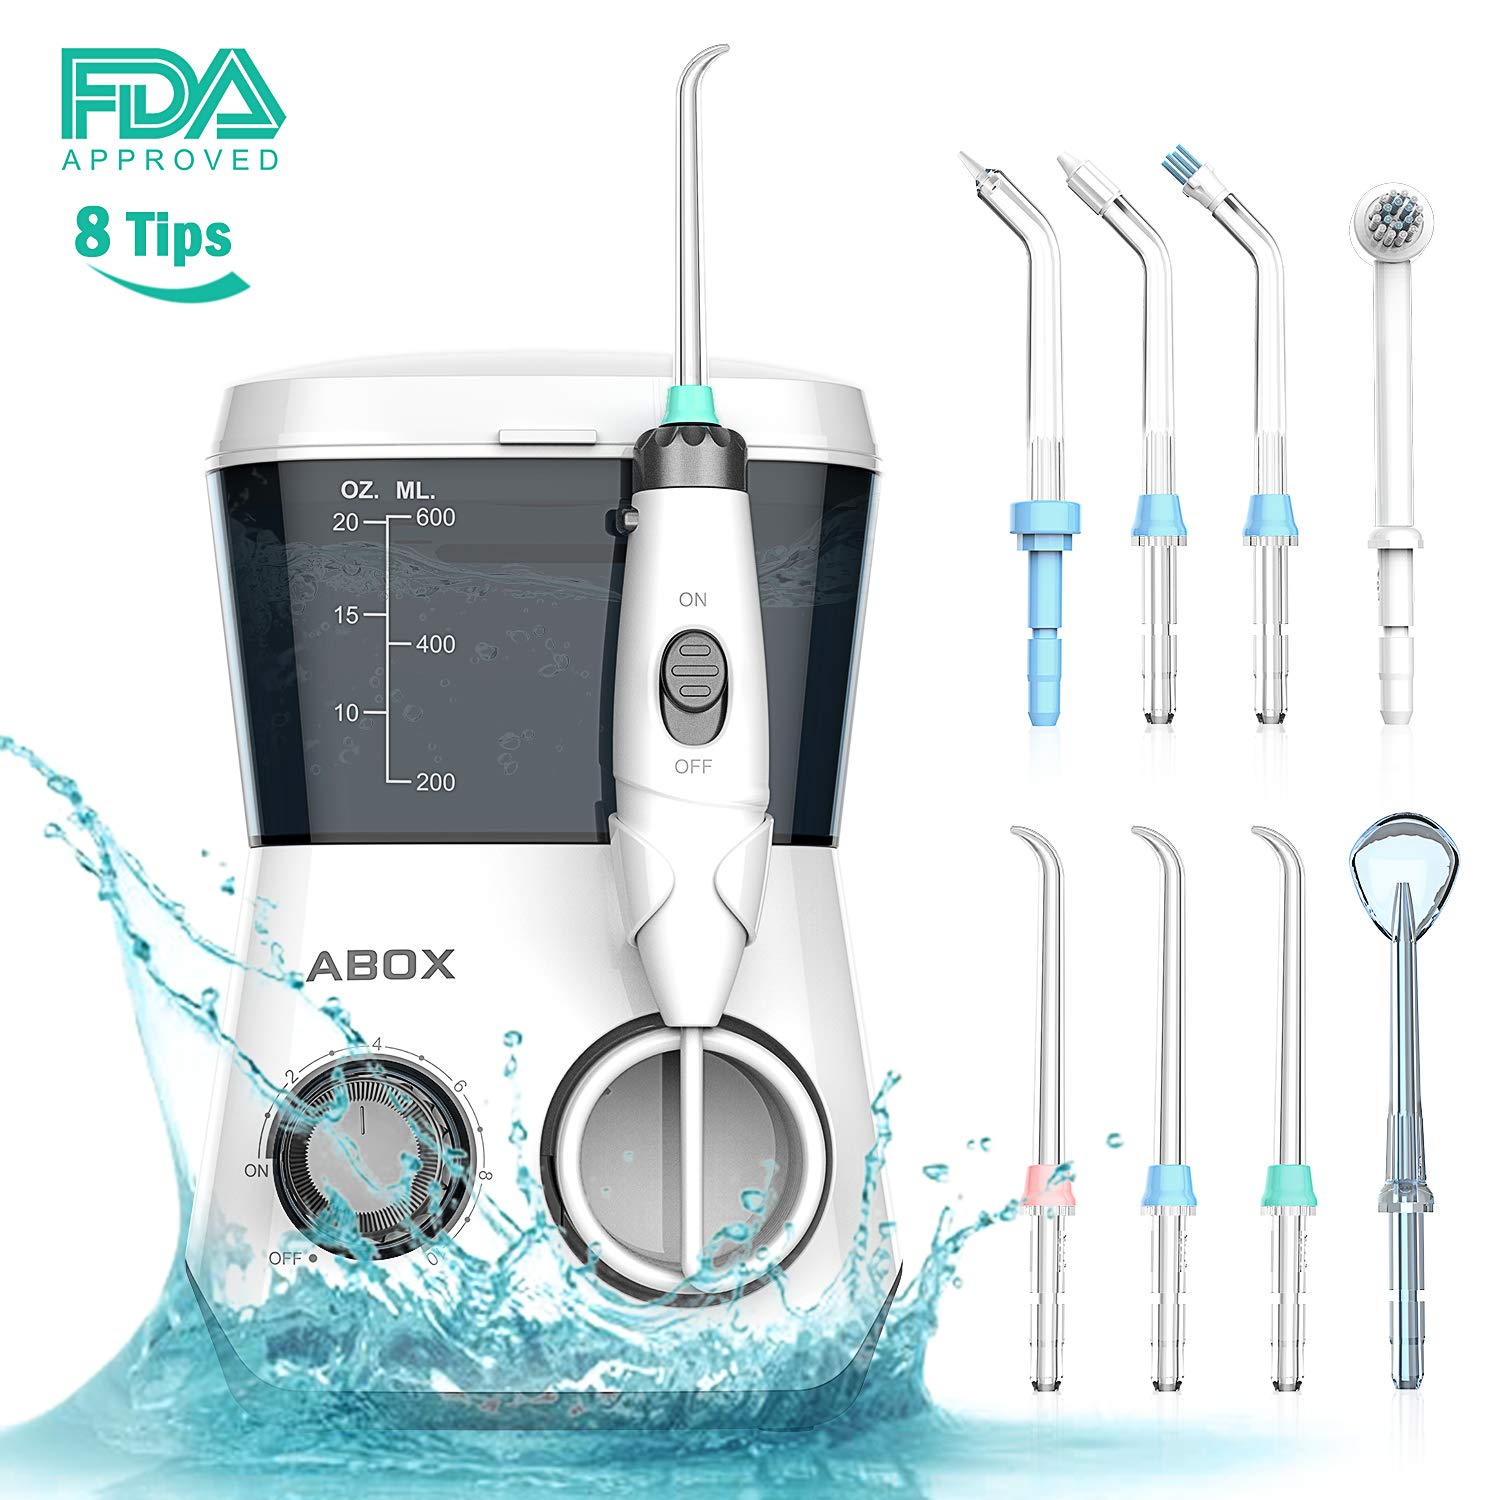 ABOX Water Flosser, Oral Irrigator Flossing Machine with 8 Jet Nozzles and 600ml Reservoir